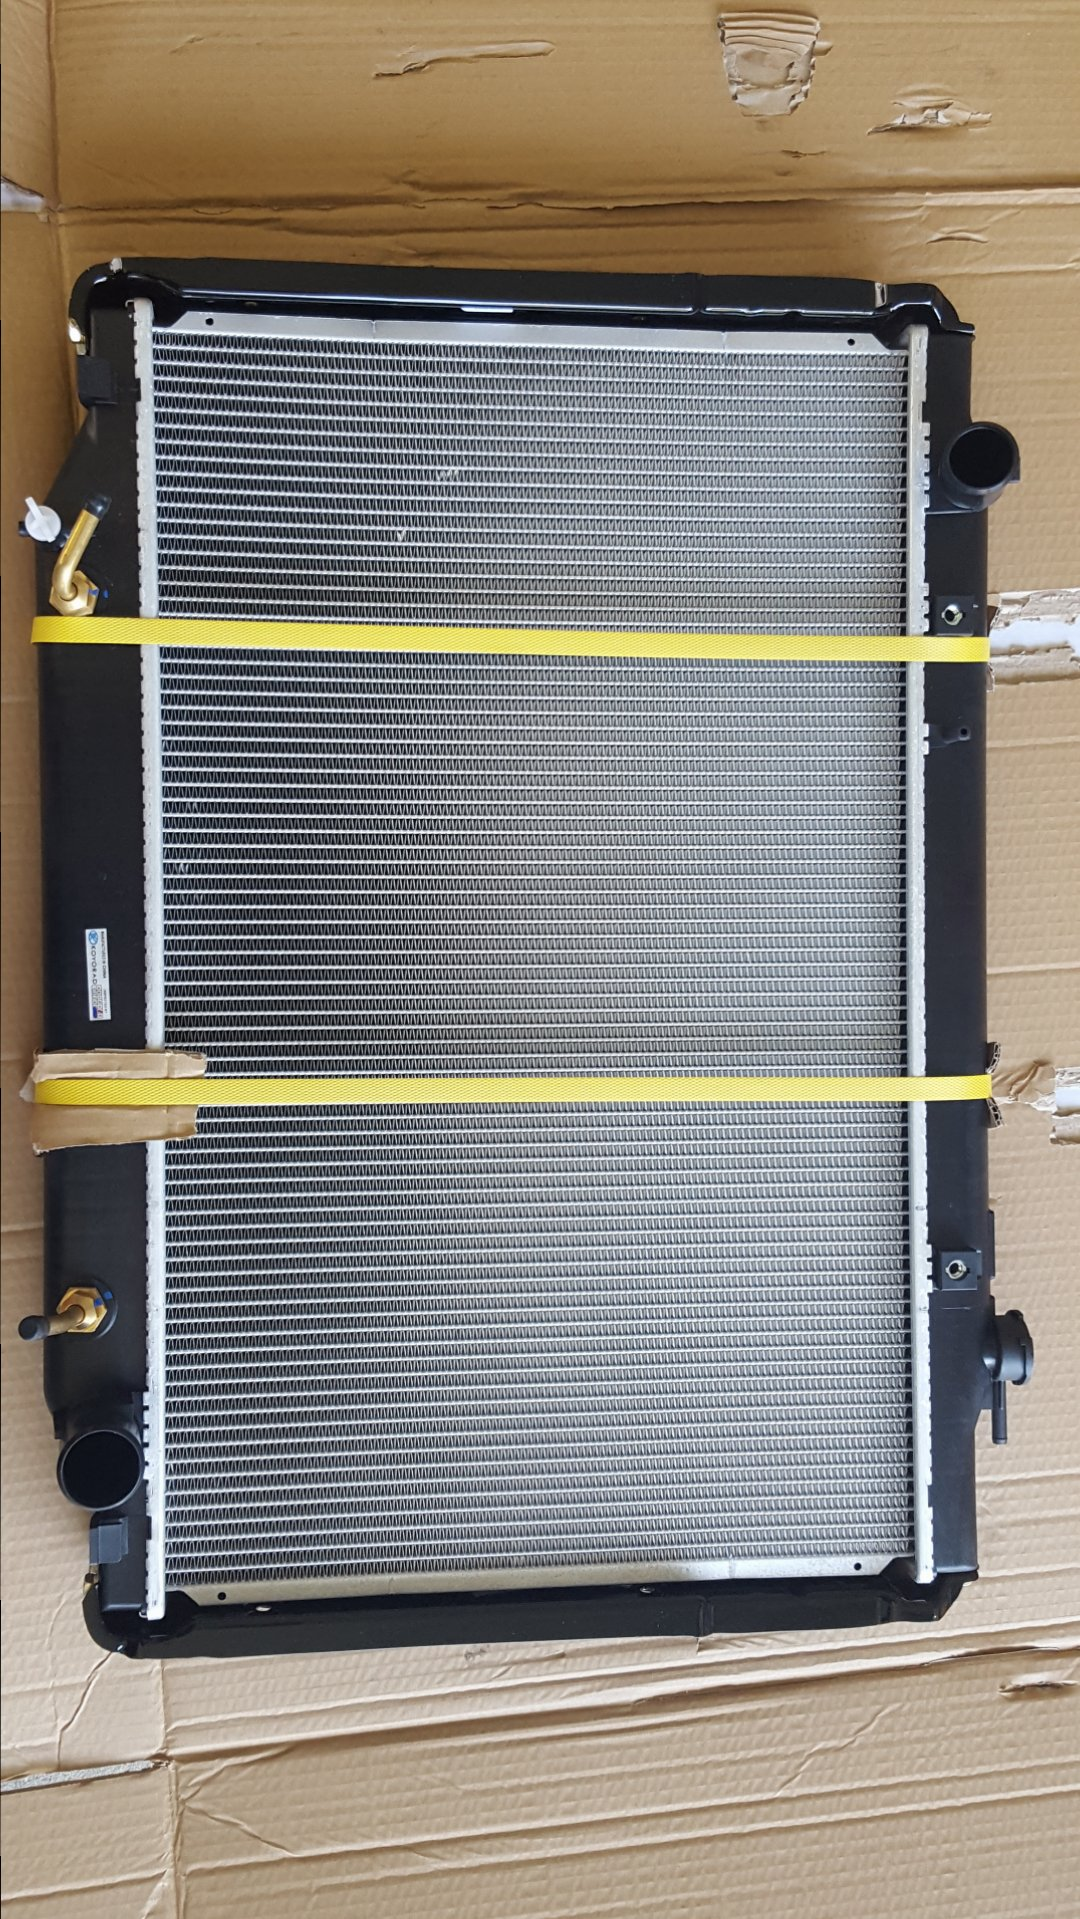 How Did Radiator Plants Become The Best: Where Did You Buy Your Koyo Radiator?